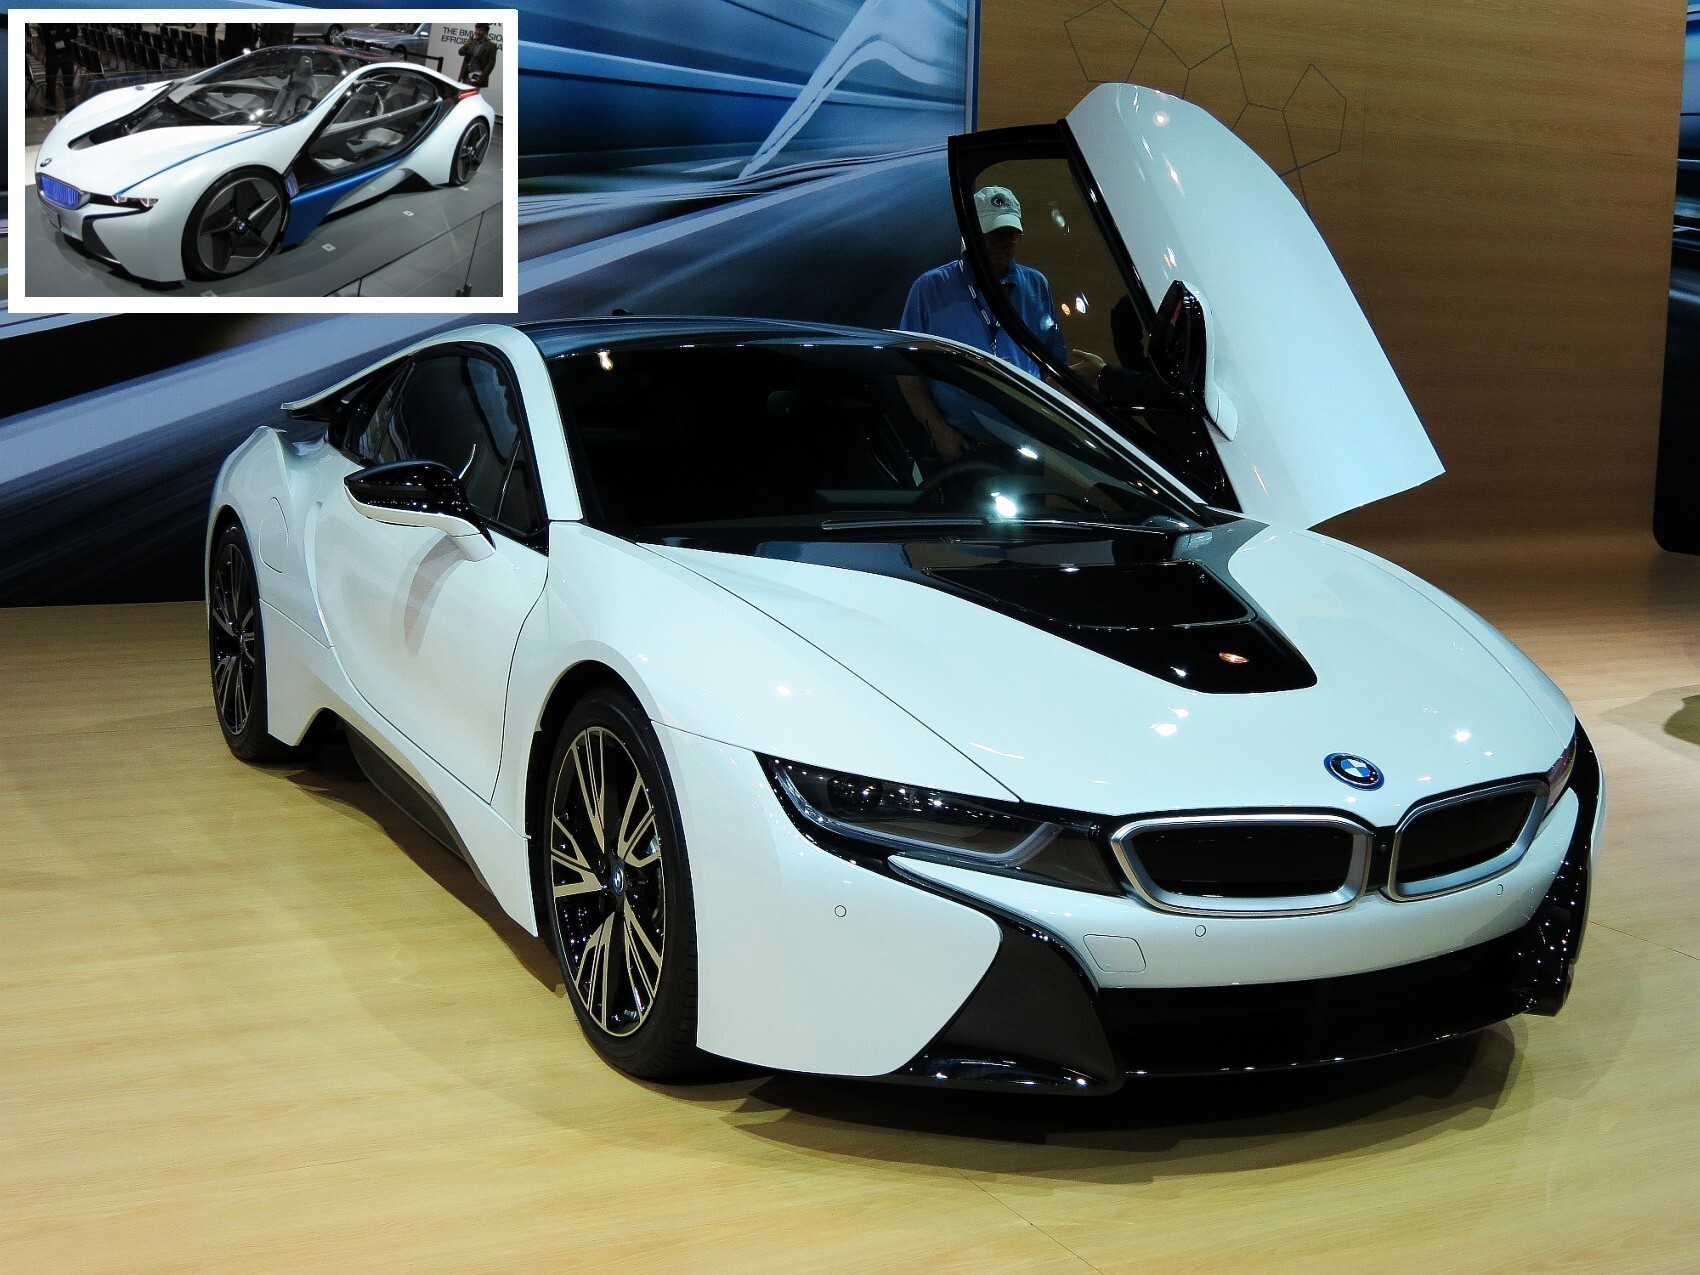 Latest Super Crystal White Bmw I8 Luxury 2 Seater Car Photos Hd